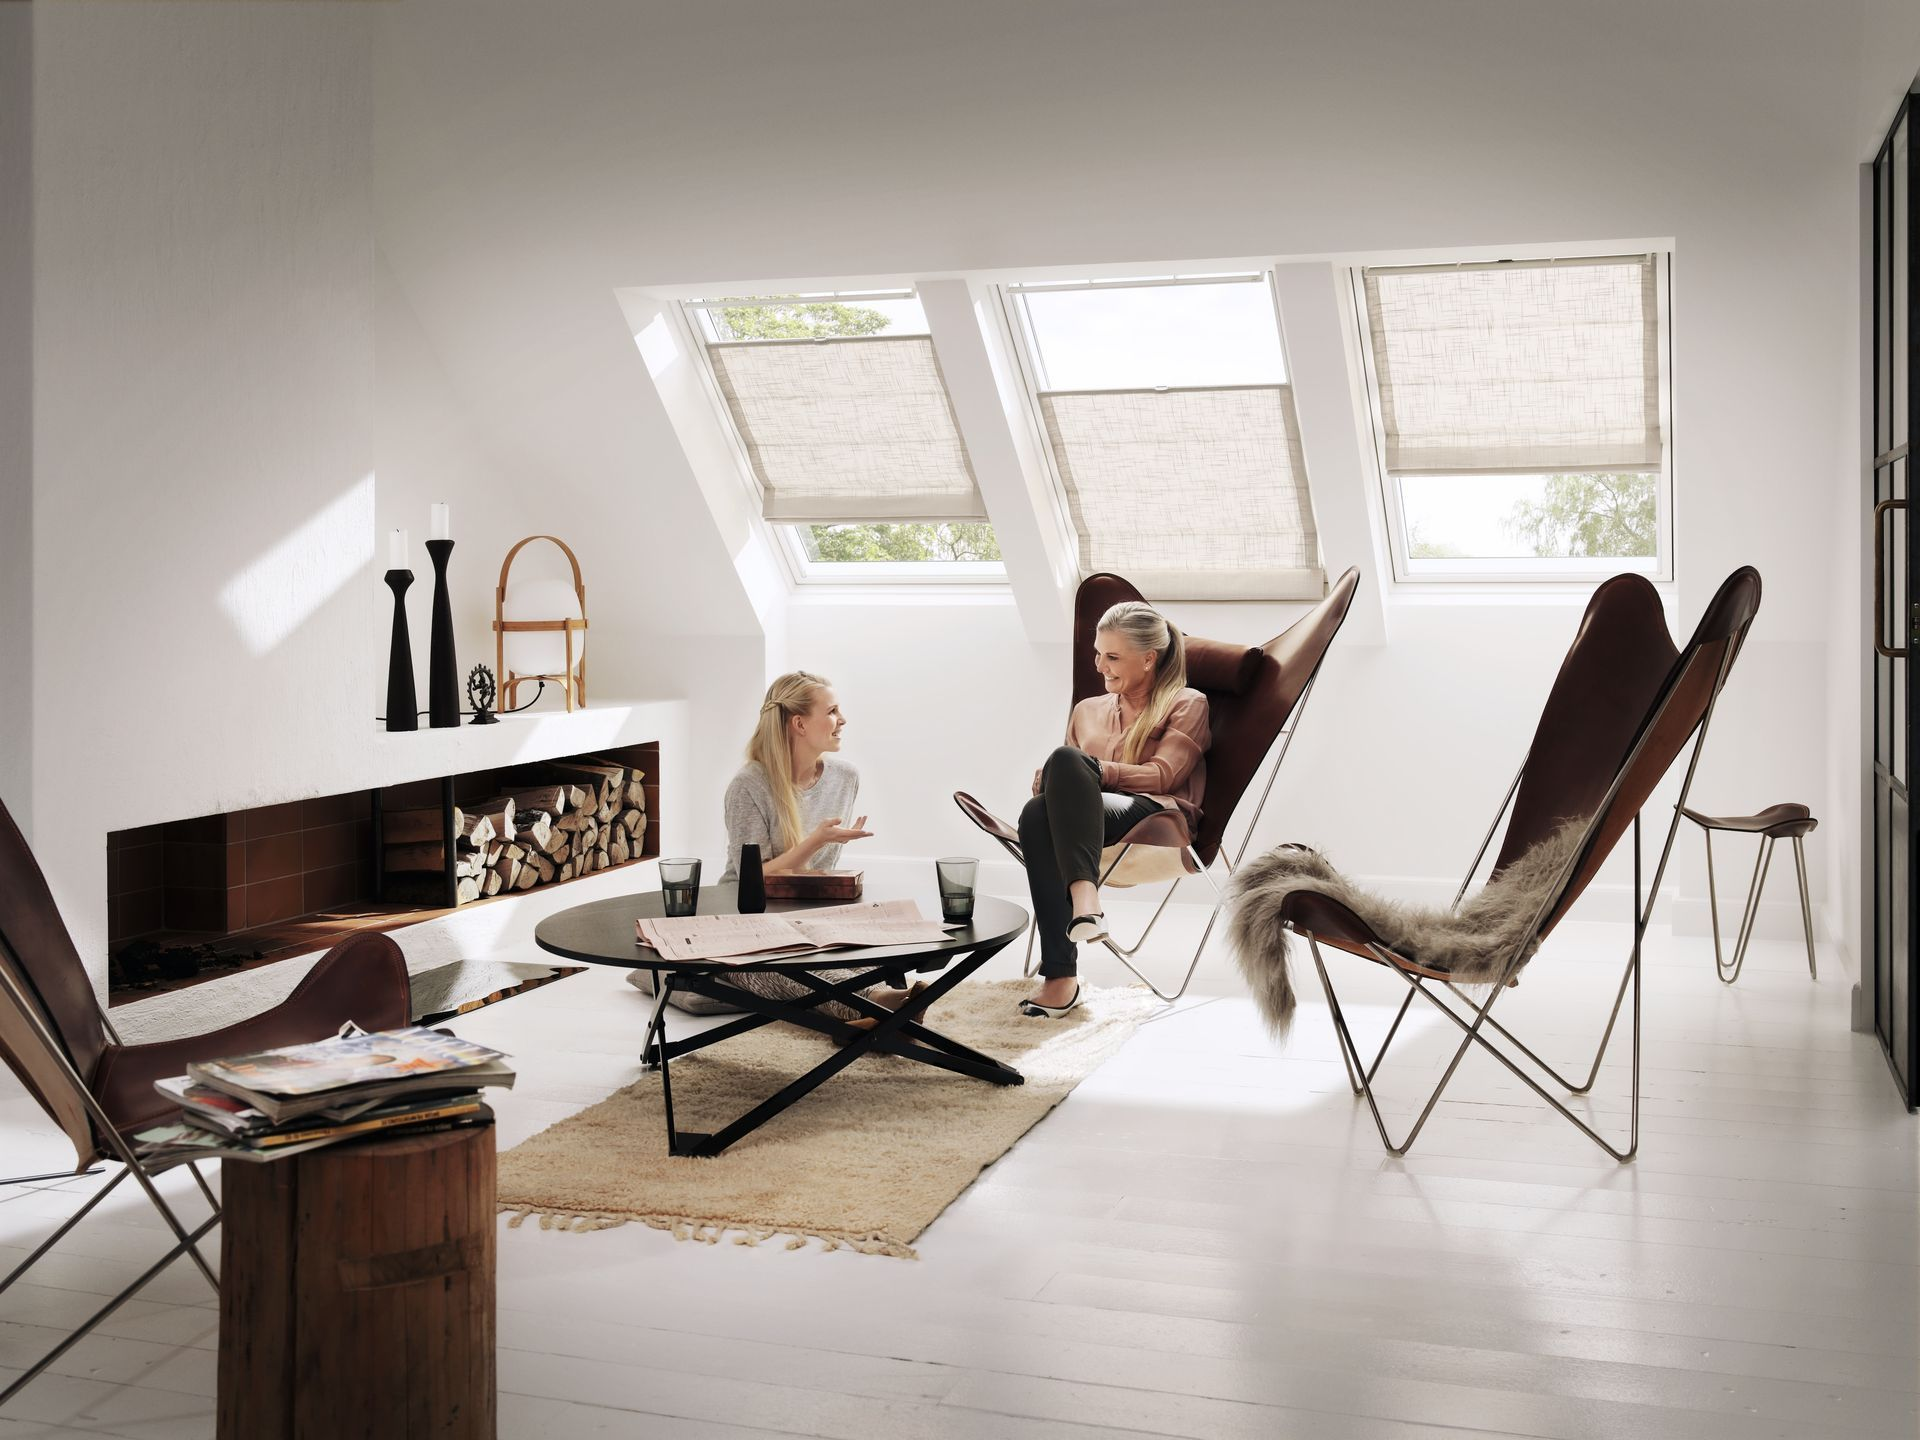 velux dachfenster ais. Black Bedroom Furniture Sets. Home Design Ideas